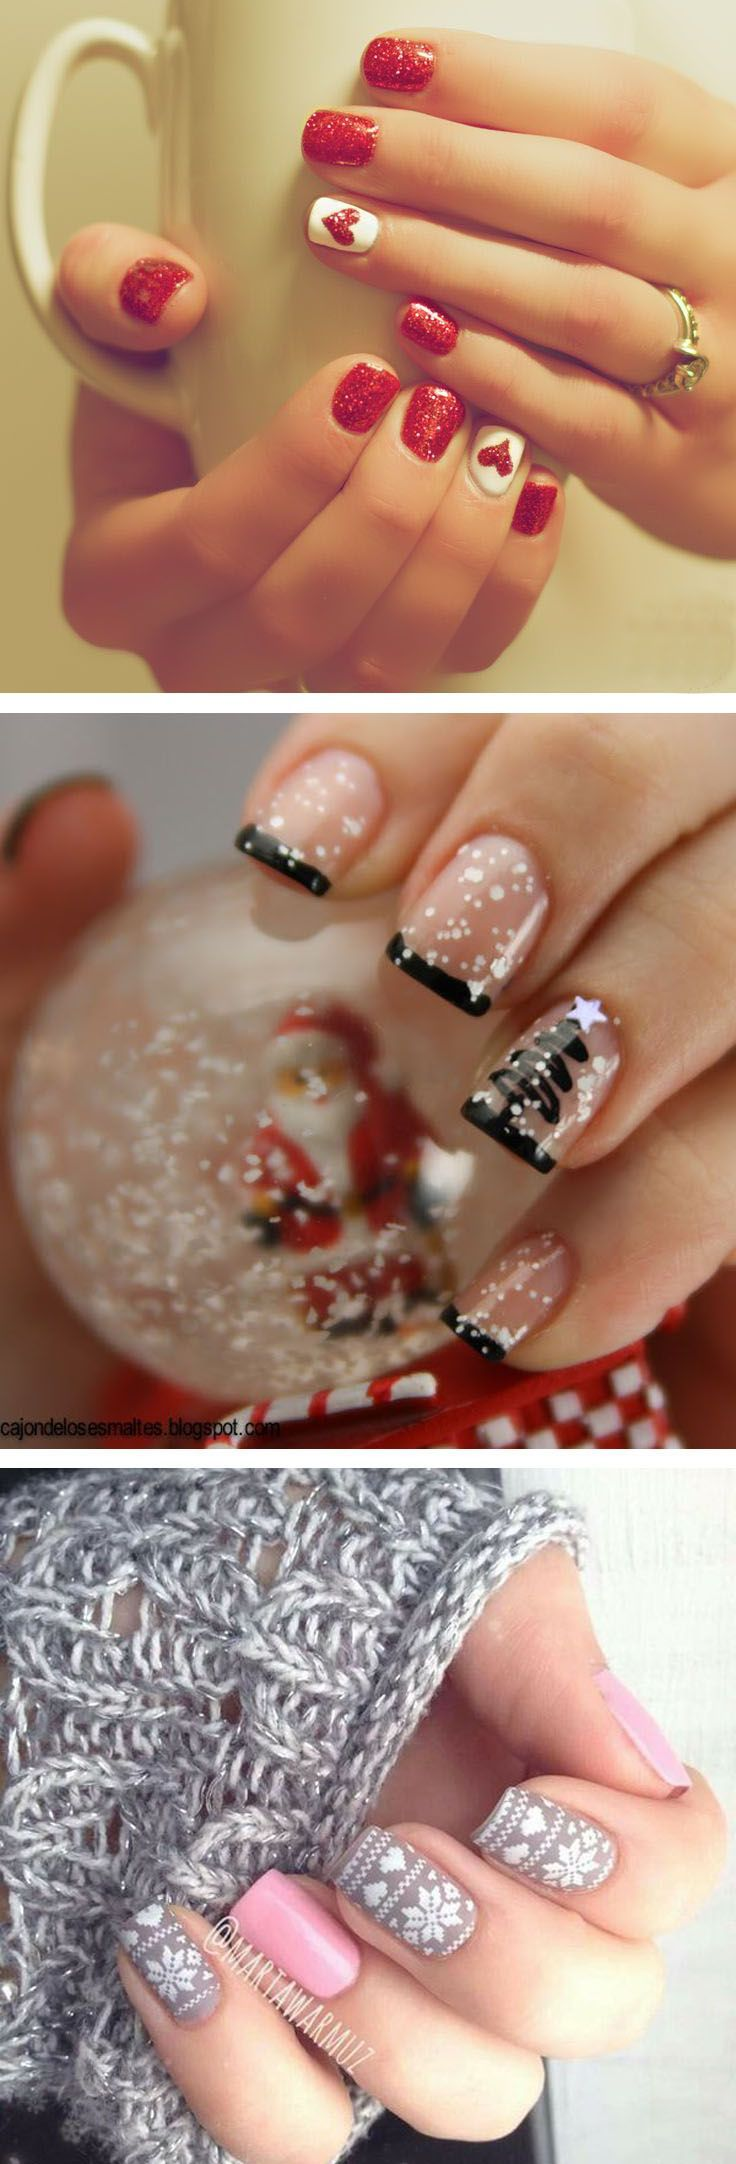 Flawless 20 Festive Christmas Nail Art Ideas https://fazhion.co/2017/10/16/20-festive-christmas-nail-art-ideas/ Hand-painted artwork is extremely easy to do. Nail art is something which is quite trendy in the majority of salon's these days. As soon as you've resolved to produce your own nail art, and you've got all of the tools you require to accomplish this